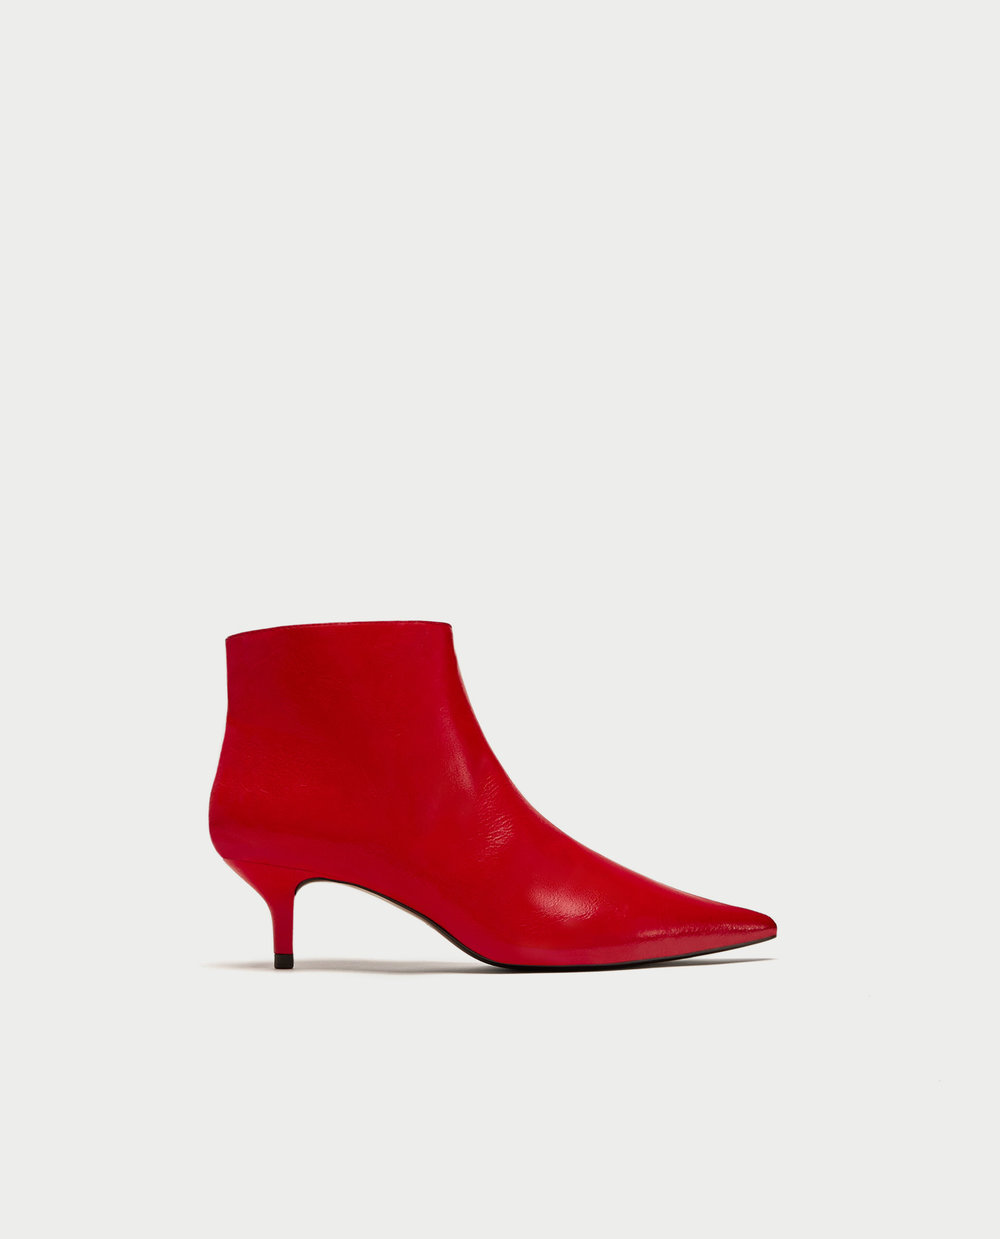 RED MID-HEEL ANKLE BOOTS. Zara. $39.